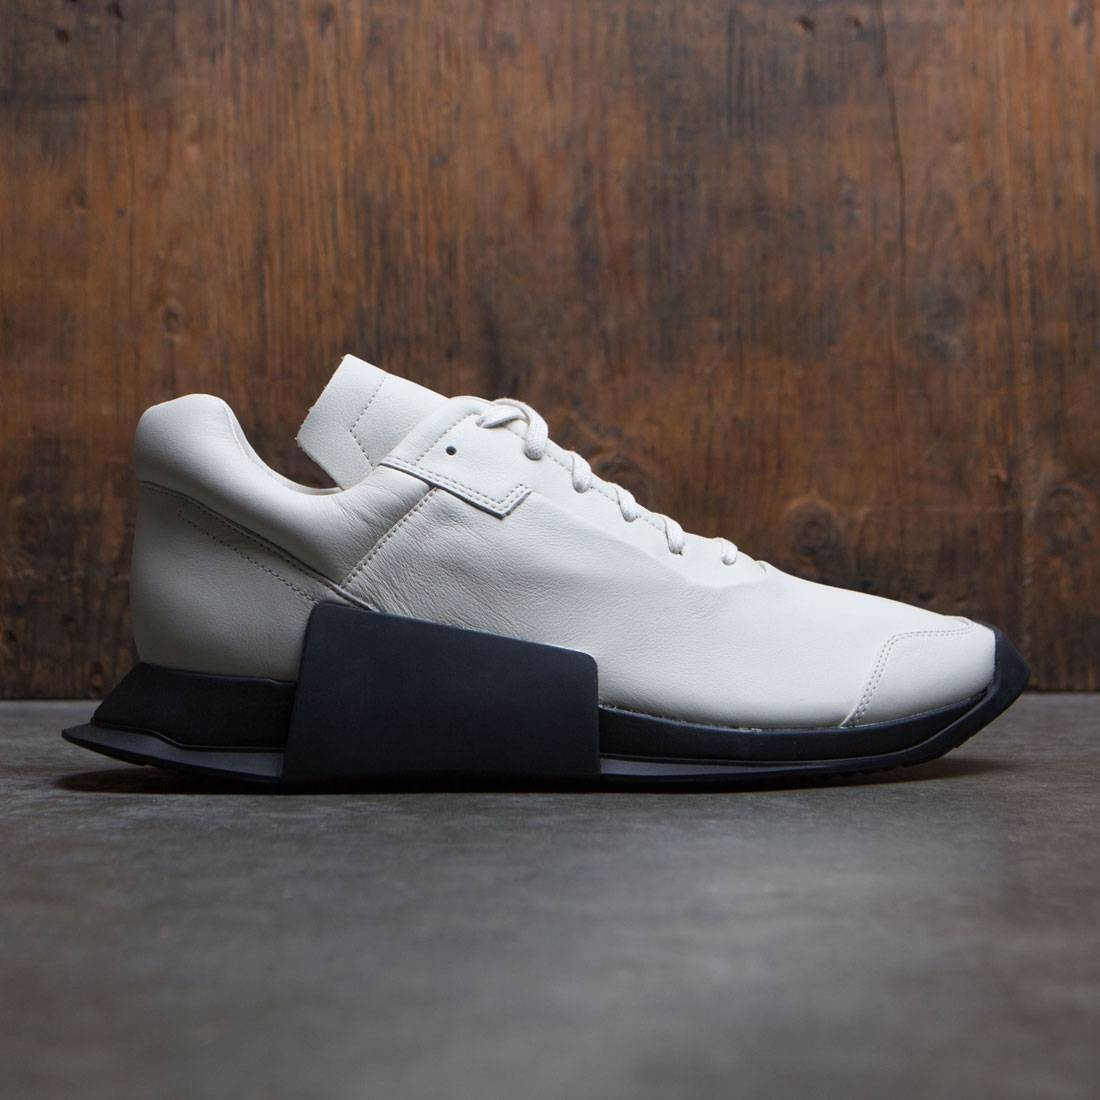 31555ae34ad Adidas x Rick Owens Men Level Runner Low II white ro milk ro black